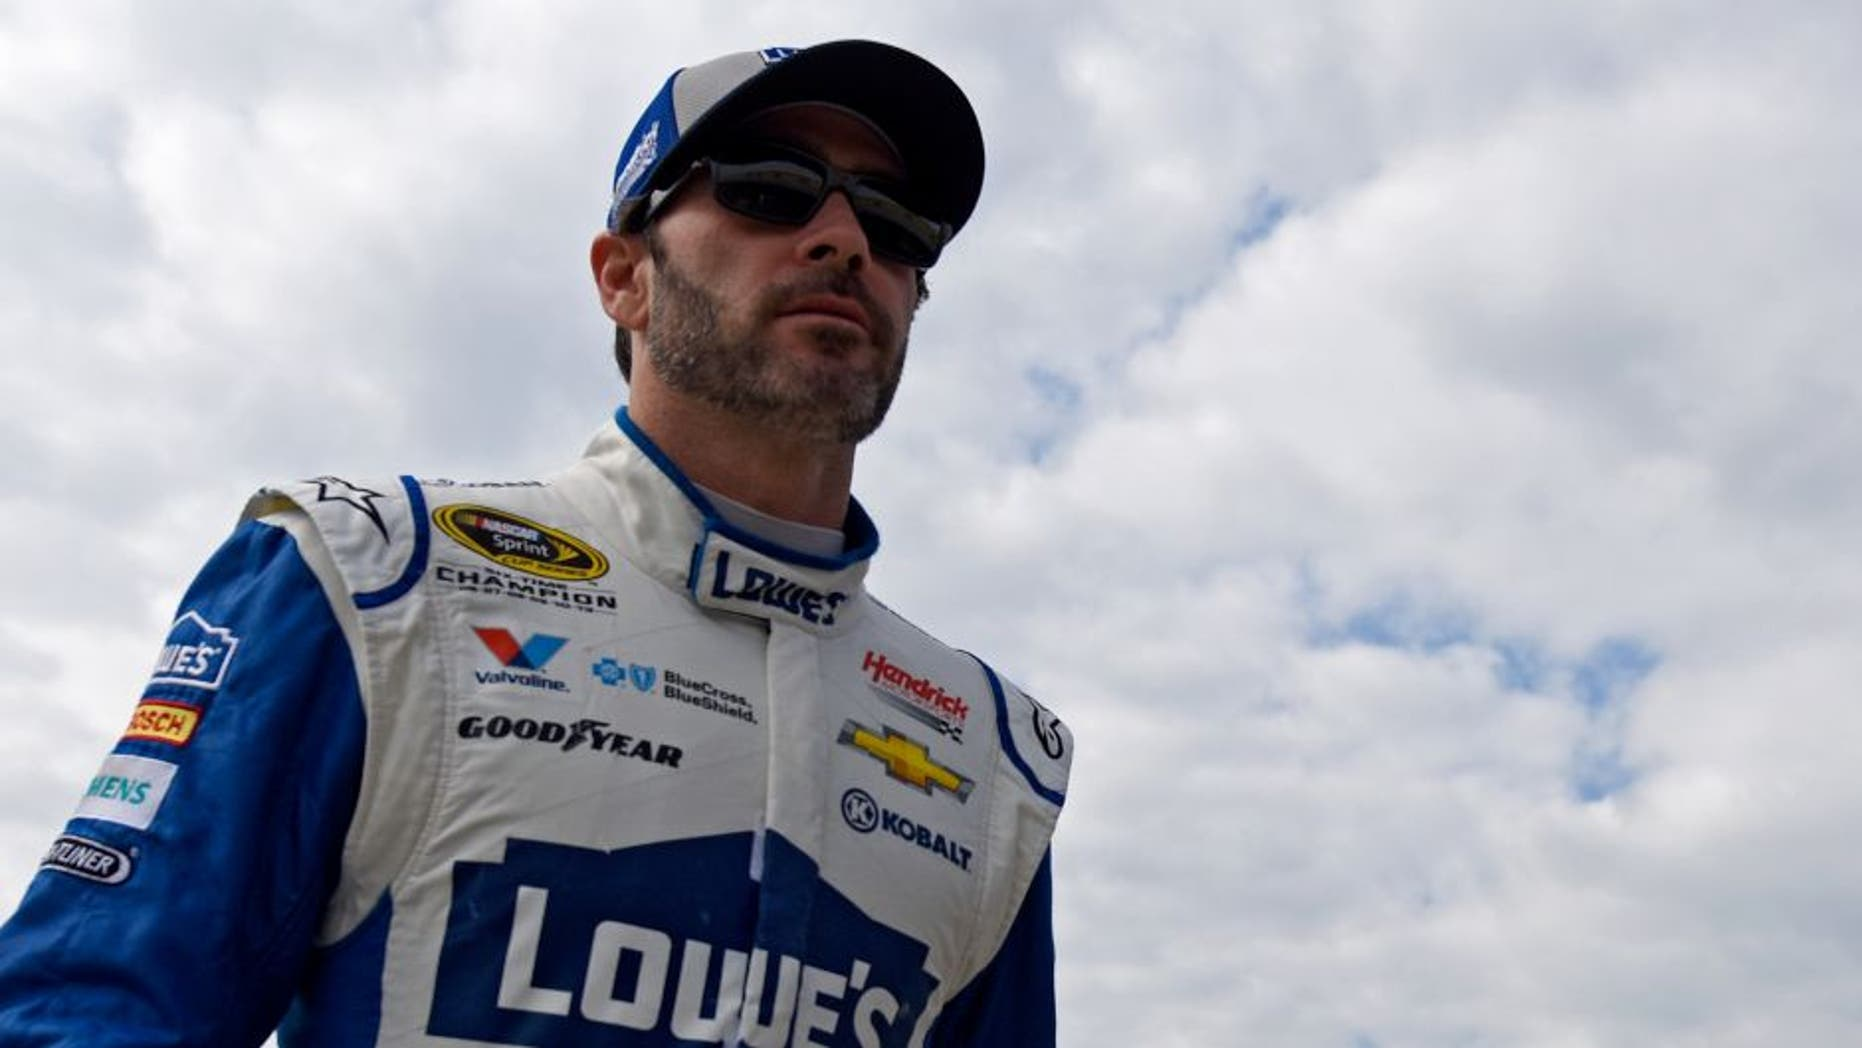 HOMESTEAD, FL - NOVEMBER 19: Jimmie Johnson, driver of the #48 Lowe's Chevrolet, walks through the garage area during practice for the NASCAR Sprint Cup Series Ford EcoBoost 400 at Homestead-Miami Speedway on November 19, 2016 in Homestead, Florida. (Photo by Jared C. Tilton/Getty Images)